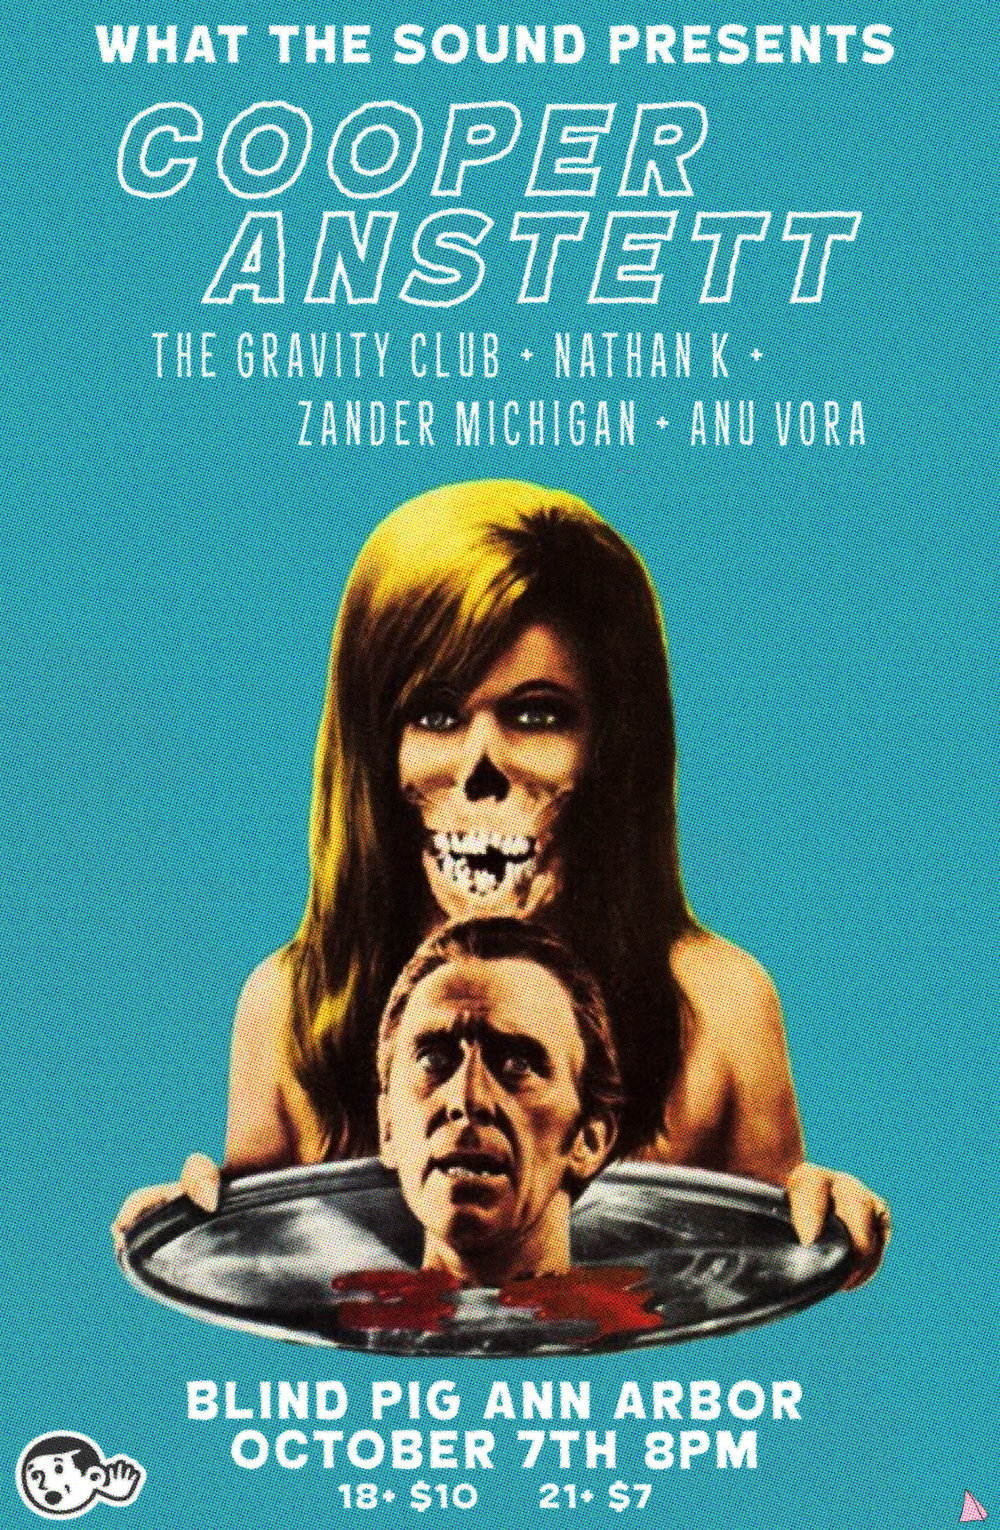 Cooper Anstett / The Gravity Club / Nathan K. / Zander Michigan / Anu Vora - Artwork by Ben Redder  October 7th, 2016 at Blind Pig